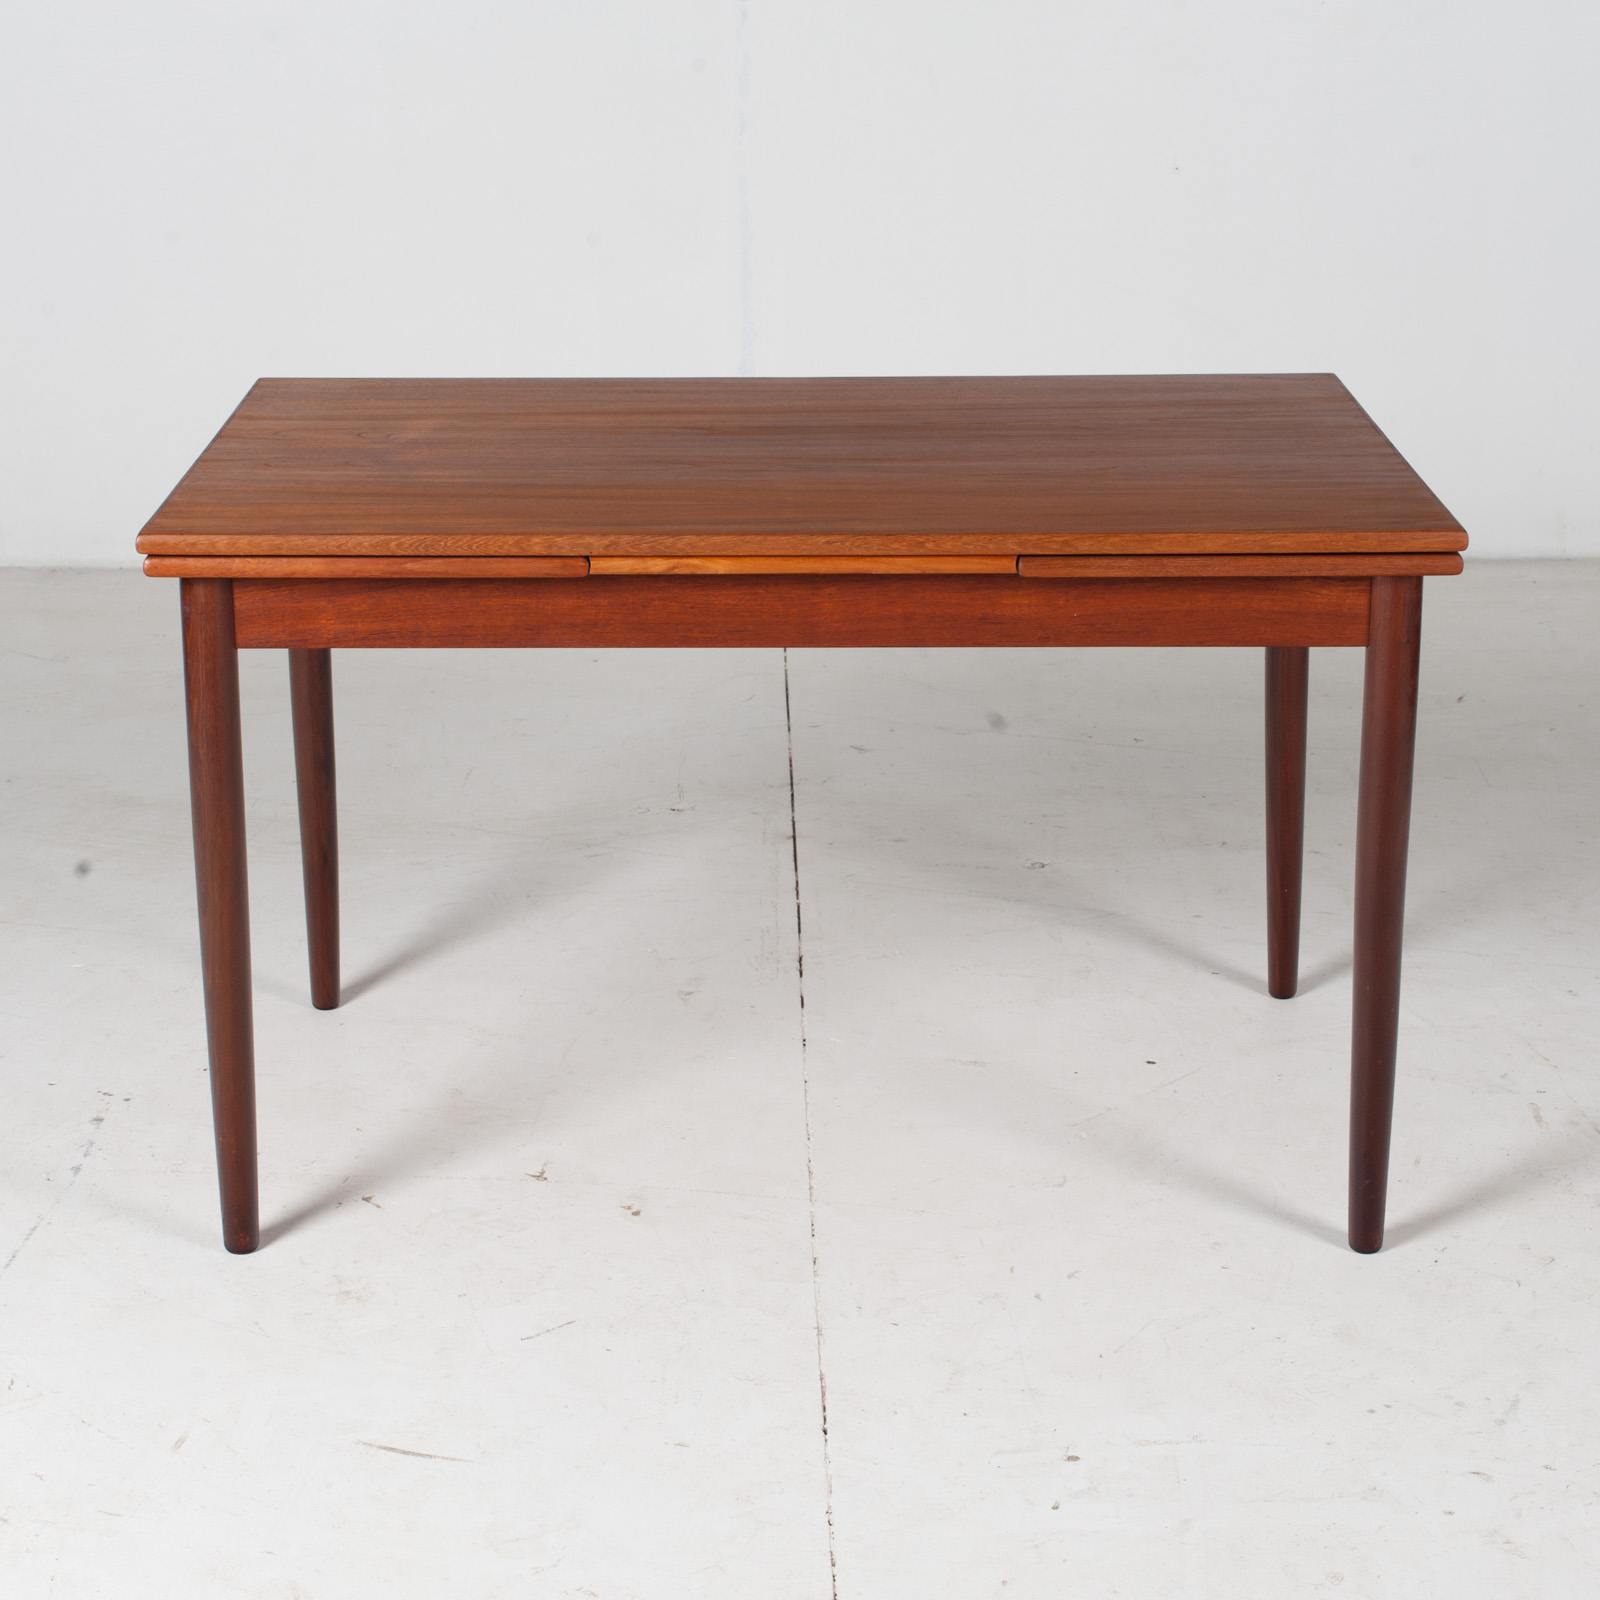 Extendable Rectangular Dining Table In Teak With Solid Edge, 1960s, Denmark2